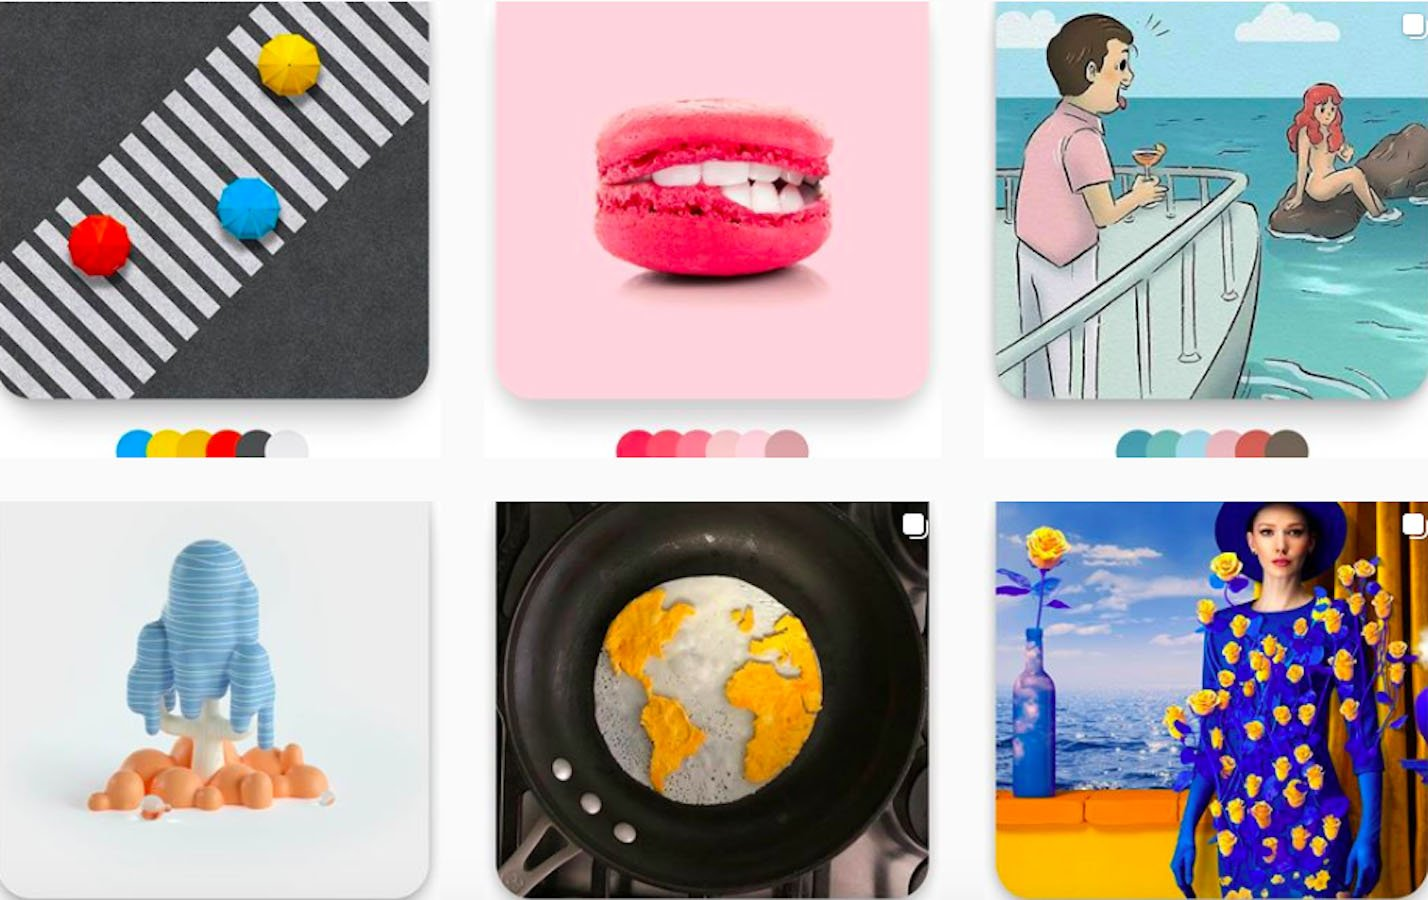 Web Design Inspiration: 110+ Accounts On Instagram and 10+ Best UX & Web Design Books in 2020 - gilldemedia